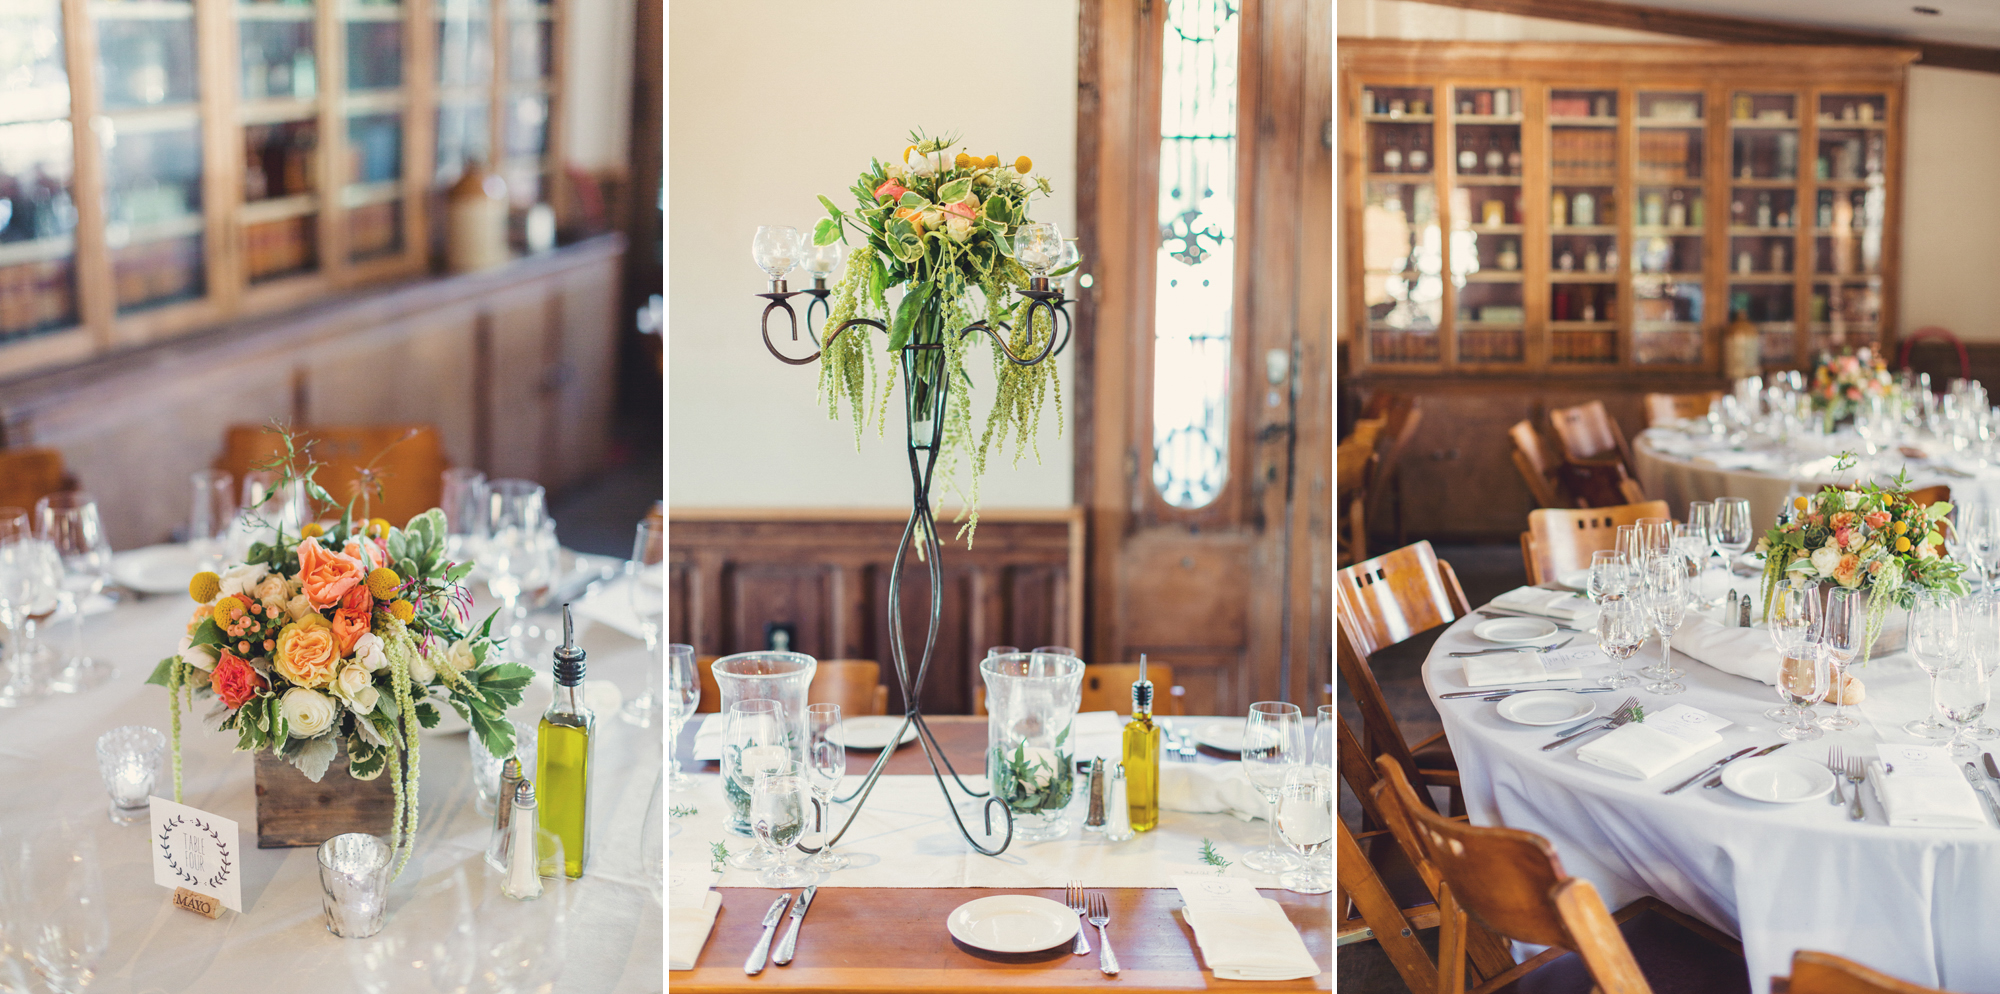 Triple S Ranch Wedding in Napa Valley @Anne-Claire Brun 0093